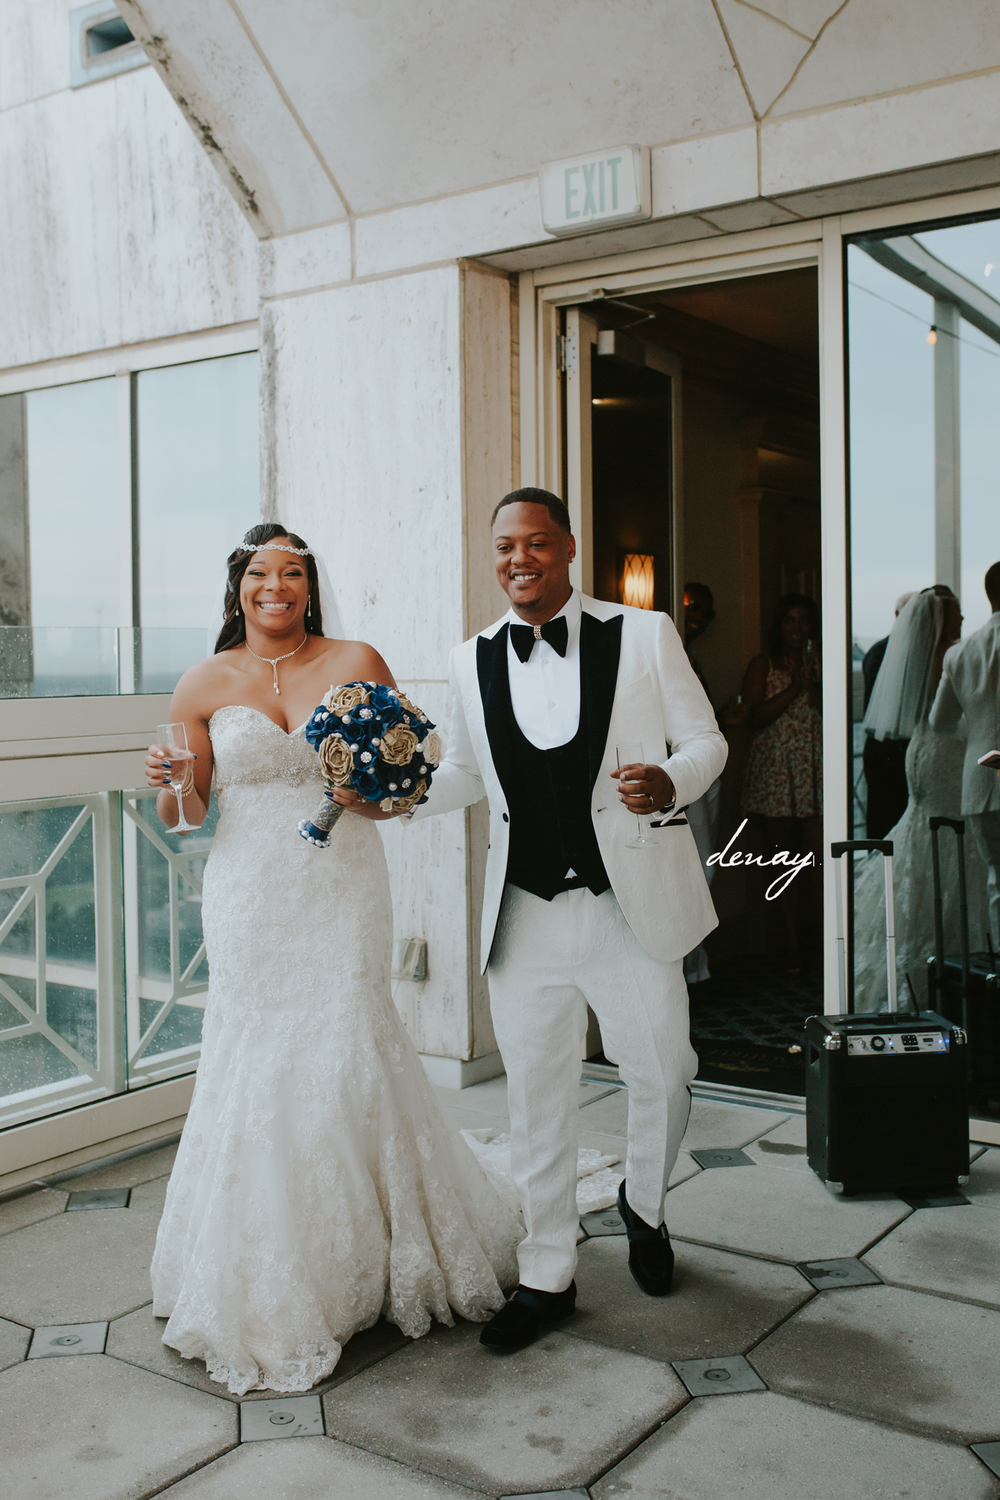 Denay Shook Photography, LLC The Peachtree Club Atlanta, Georgia Wedding Photographer